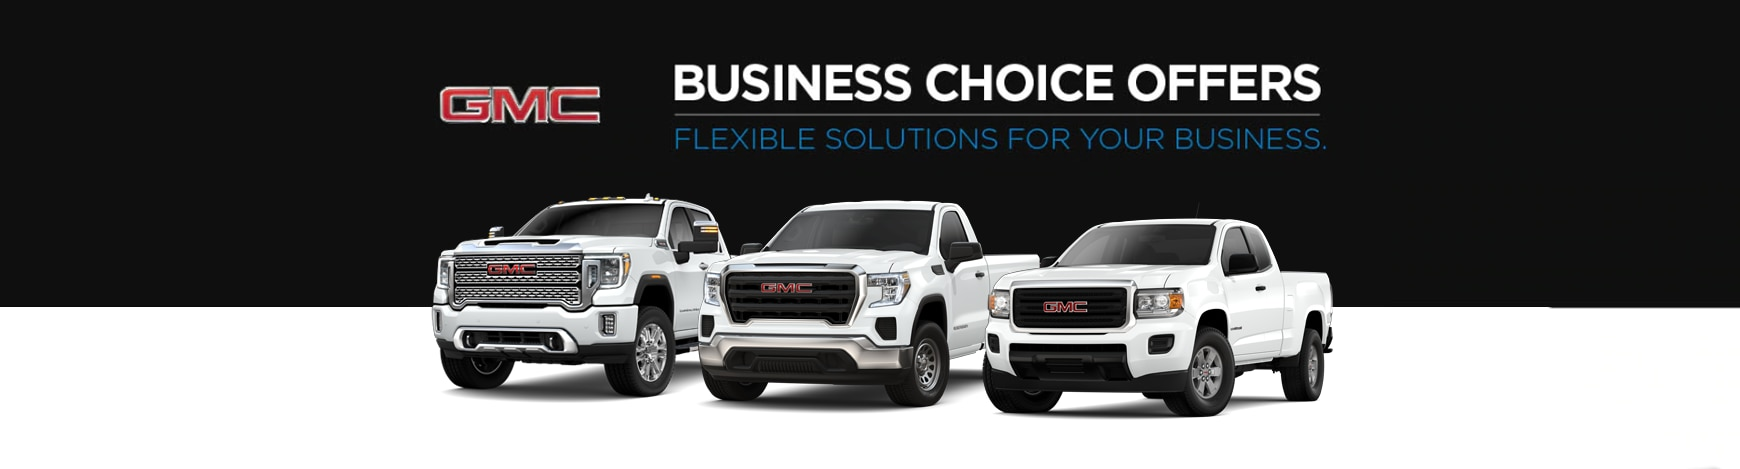 GMC Business Choice Offers.